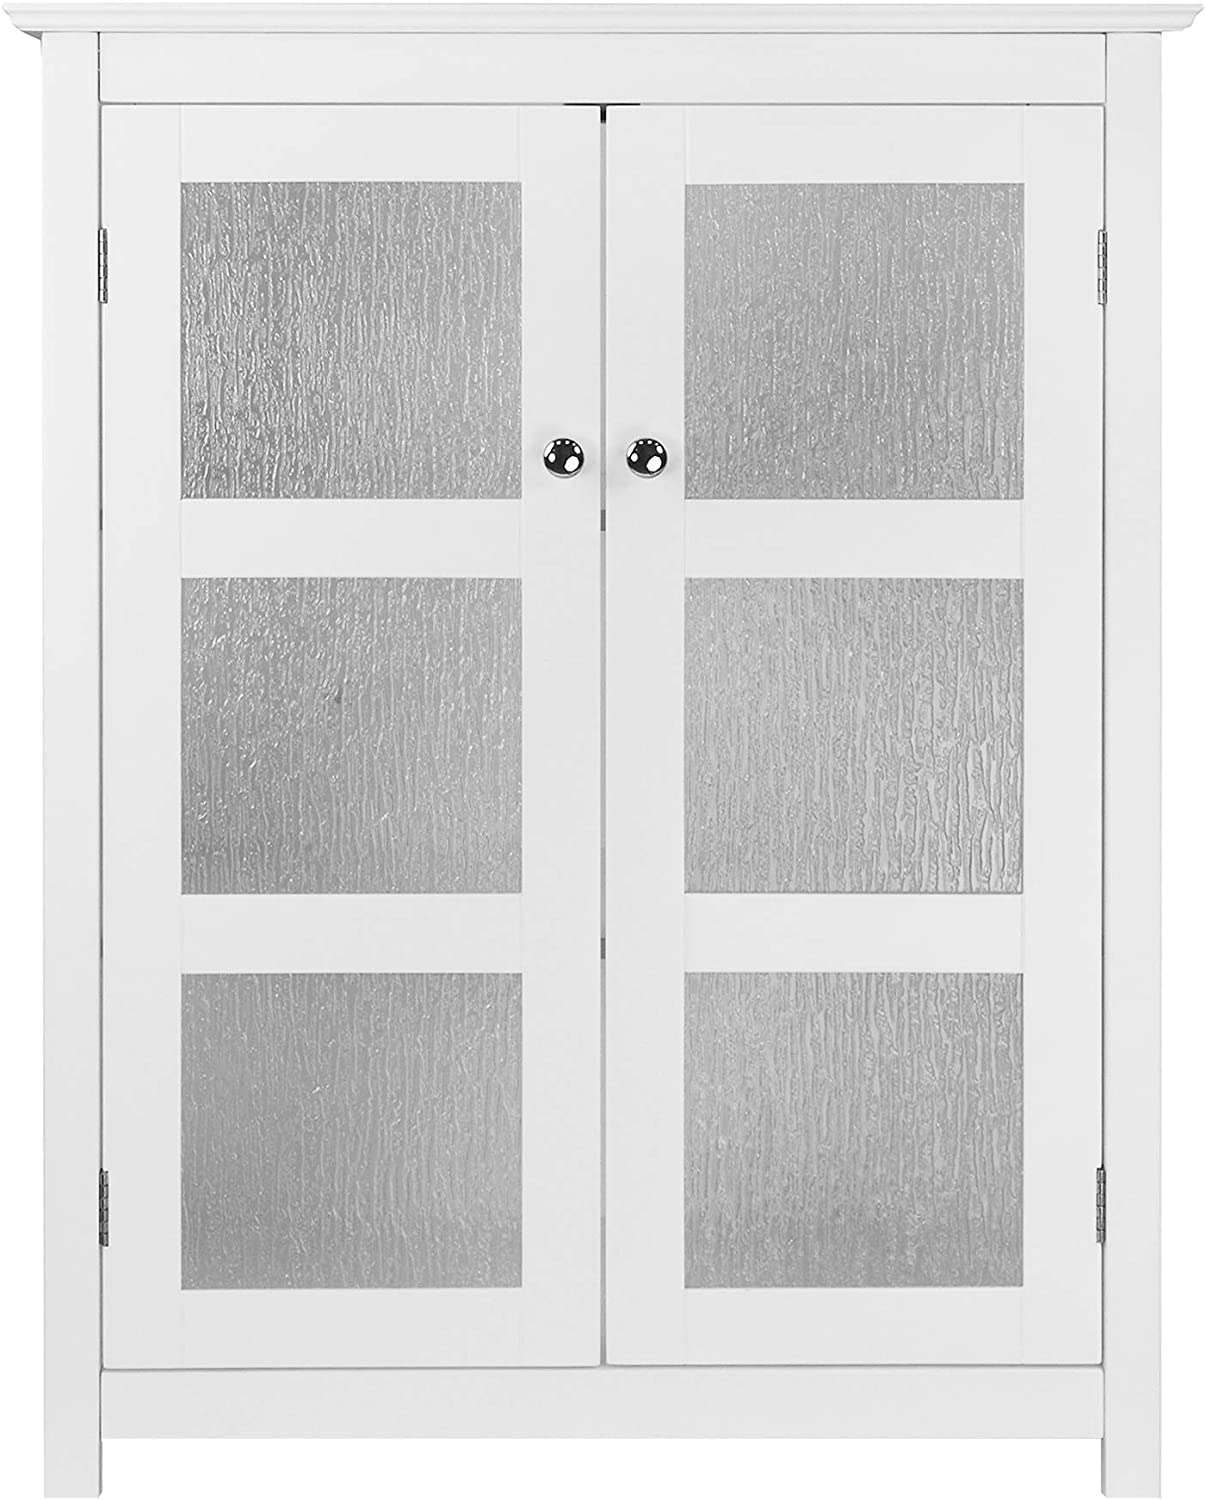 Elegant Home Fashions Special price for a limited time Dixie Cabinet White Bathroom Daily bargain sale